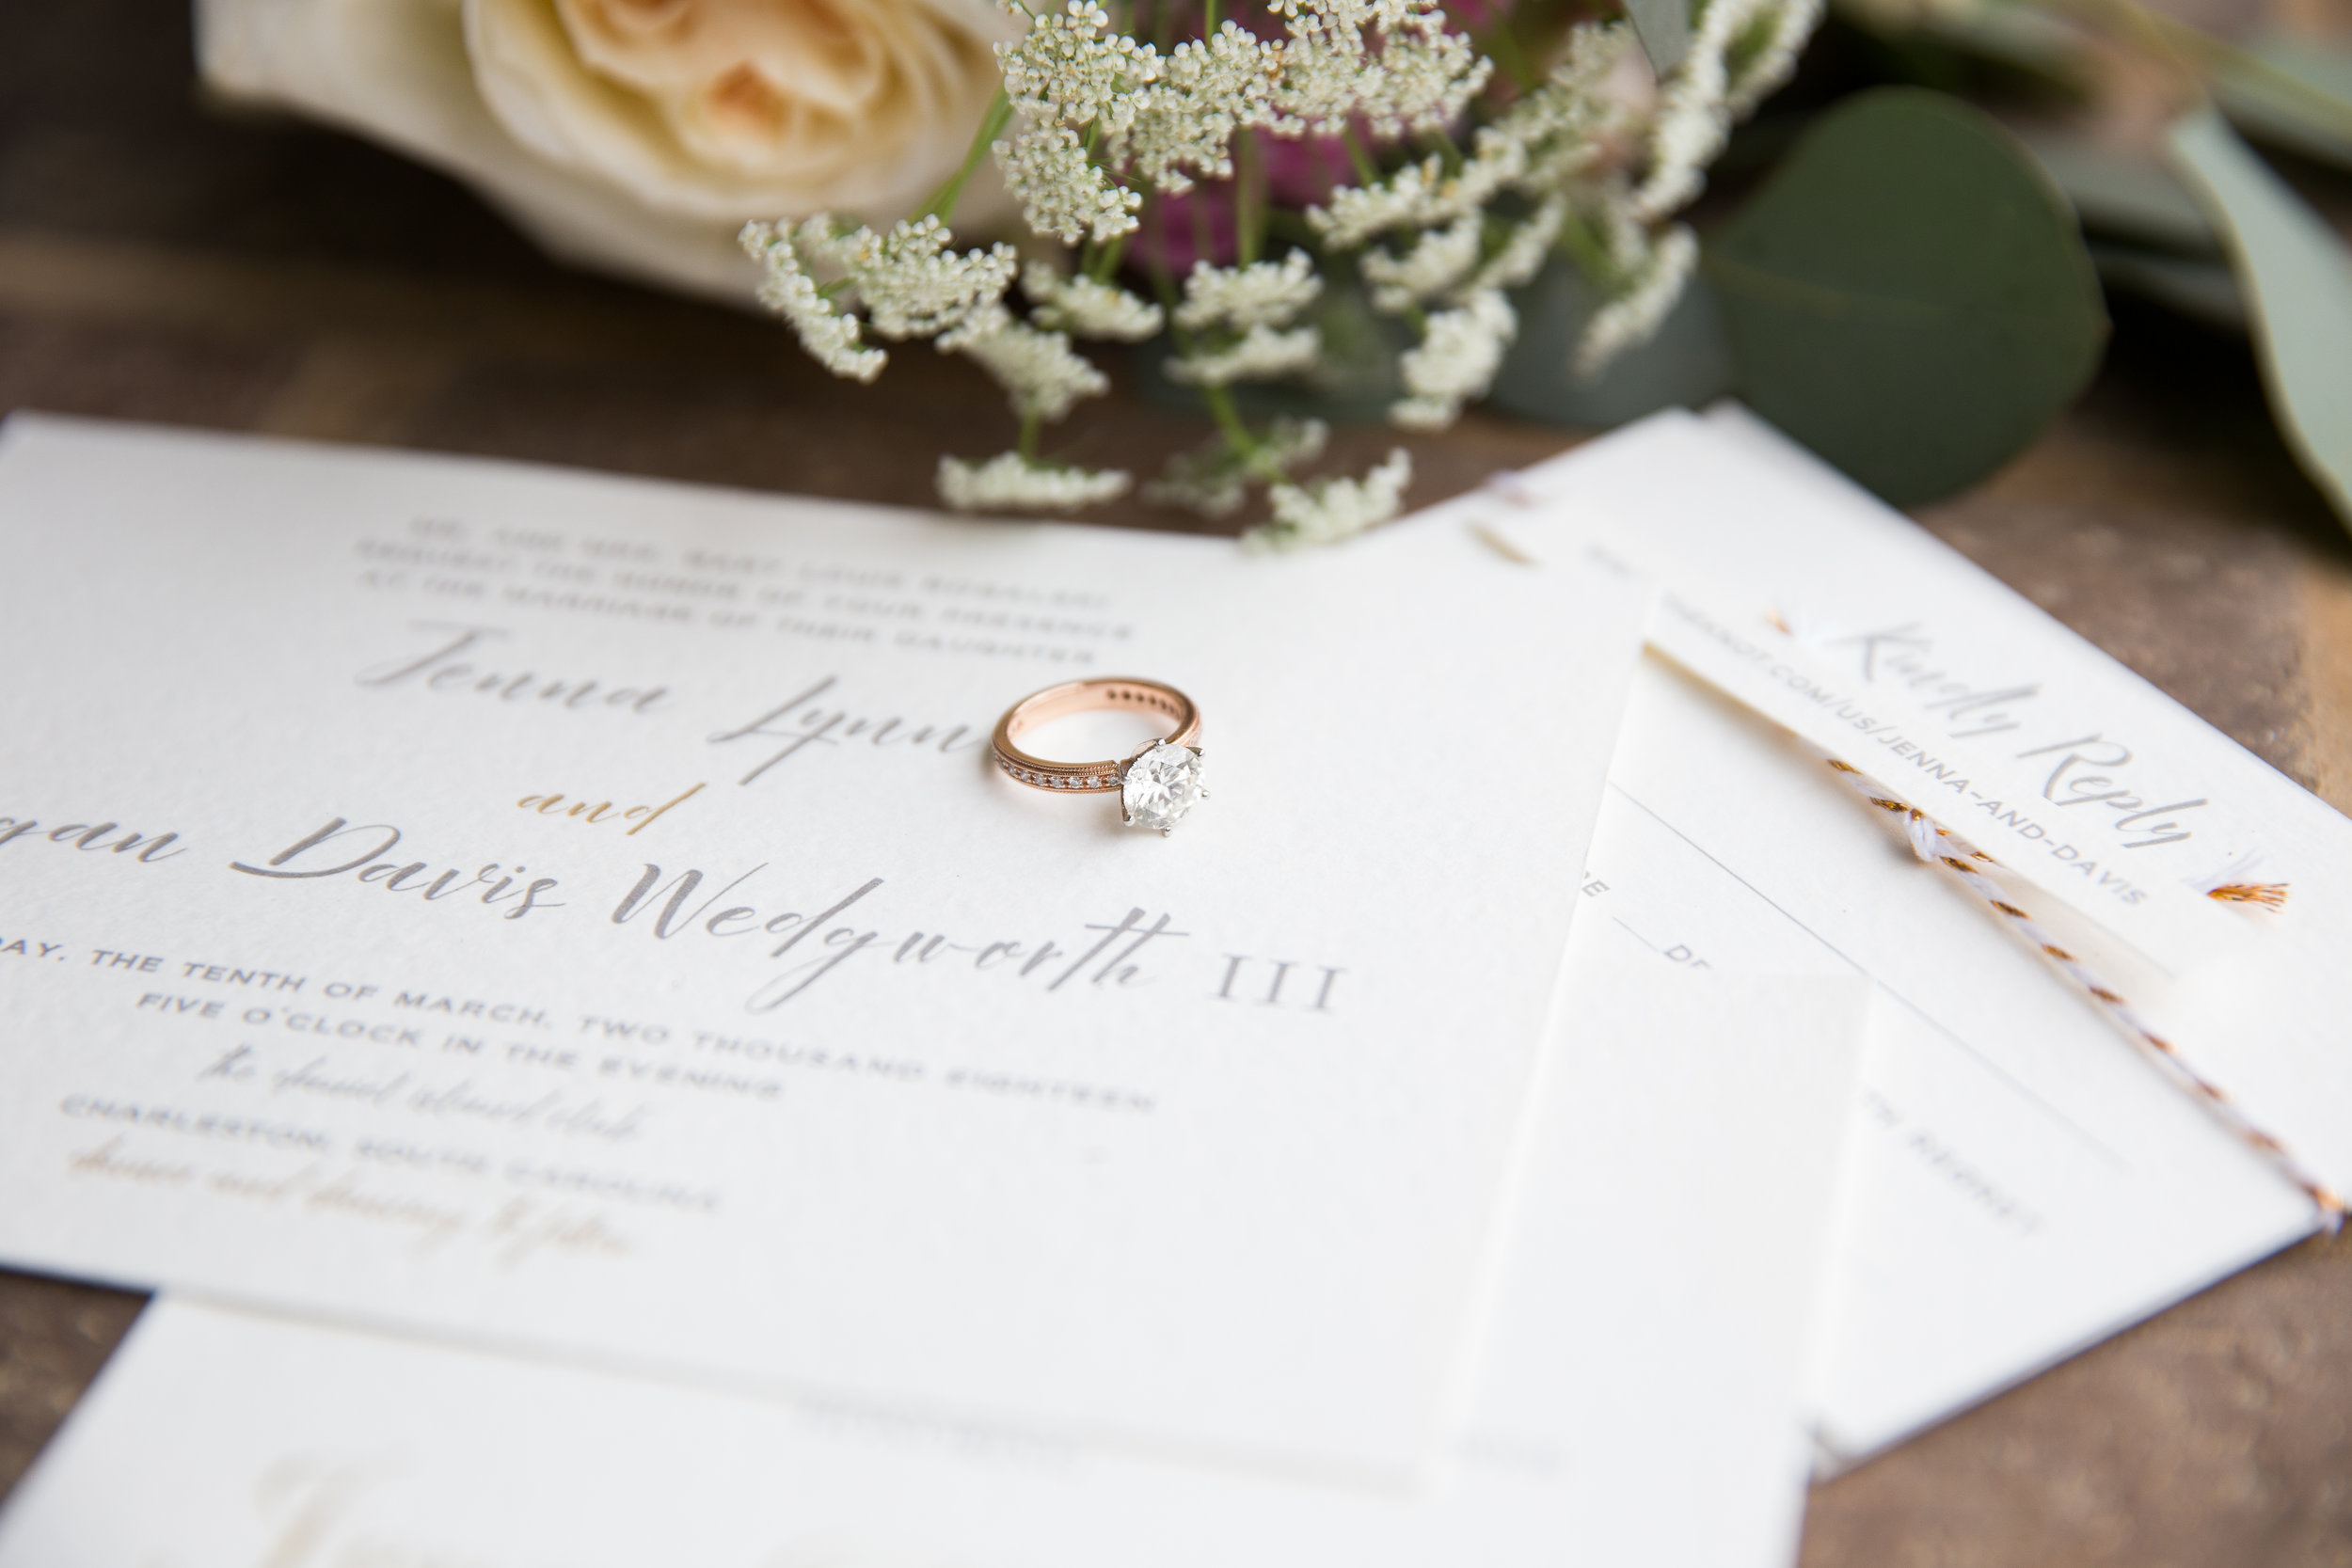 invites with ring.jpg